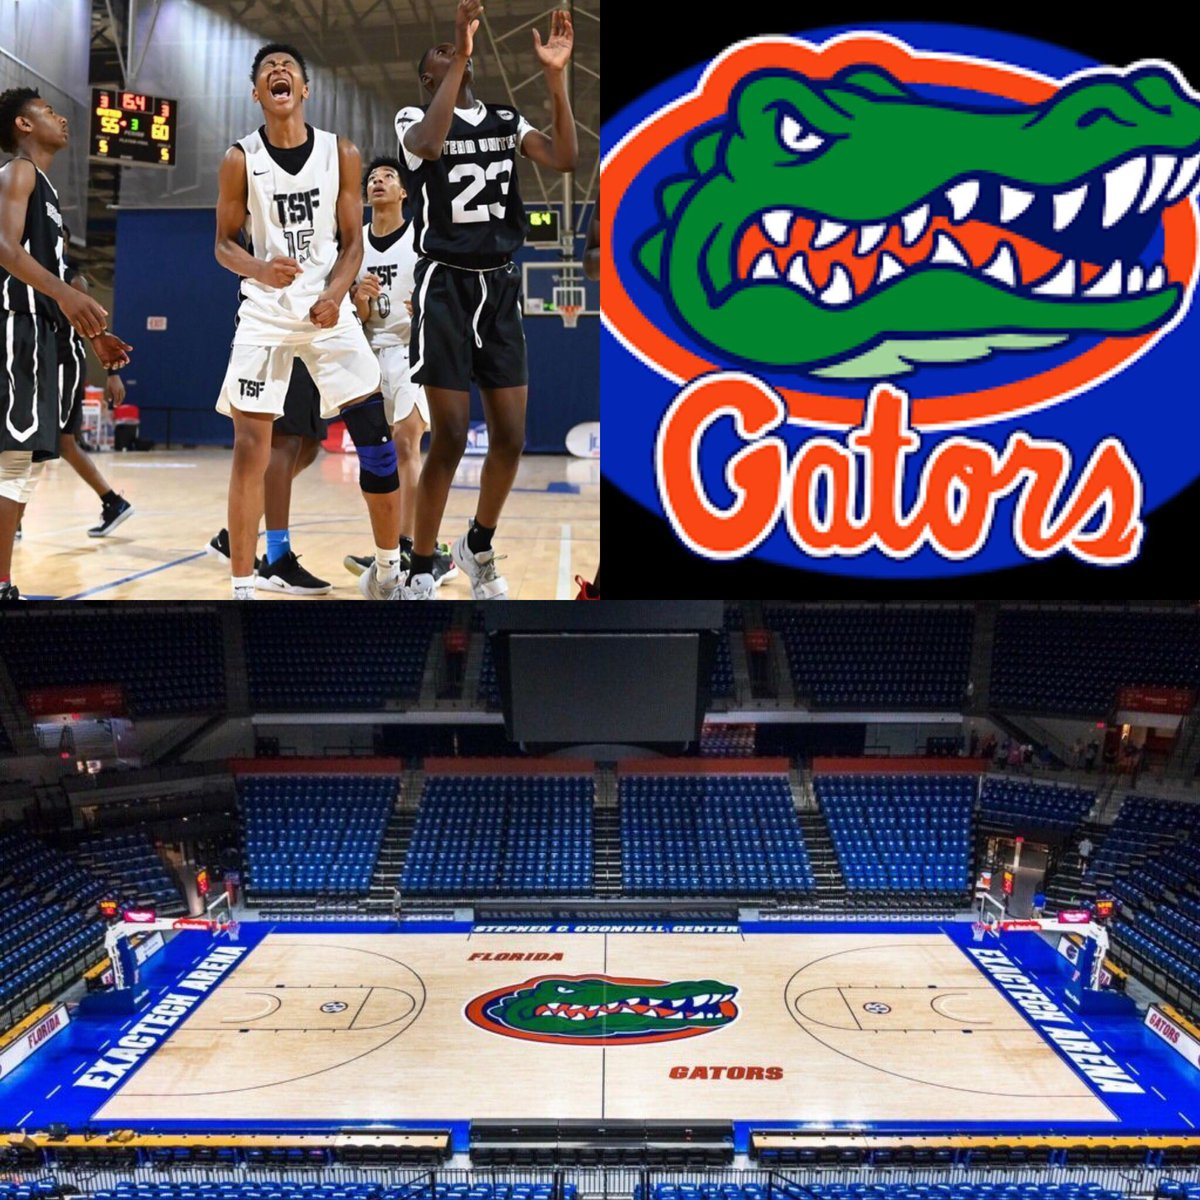 Congrats to Kanaan Carlyle, he received his first offer tonight from The University of Florida. #workethic #fearless #keepgoing @milton_hoops @WhitehartHoops #Mpire 🏀🔥